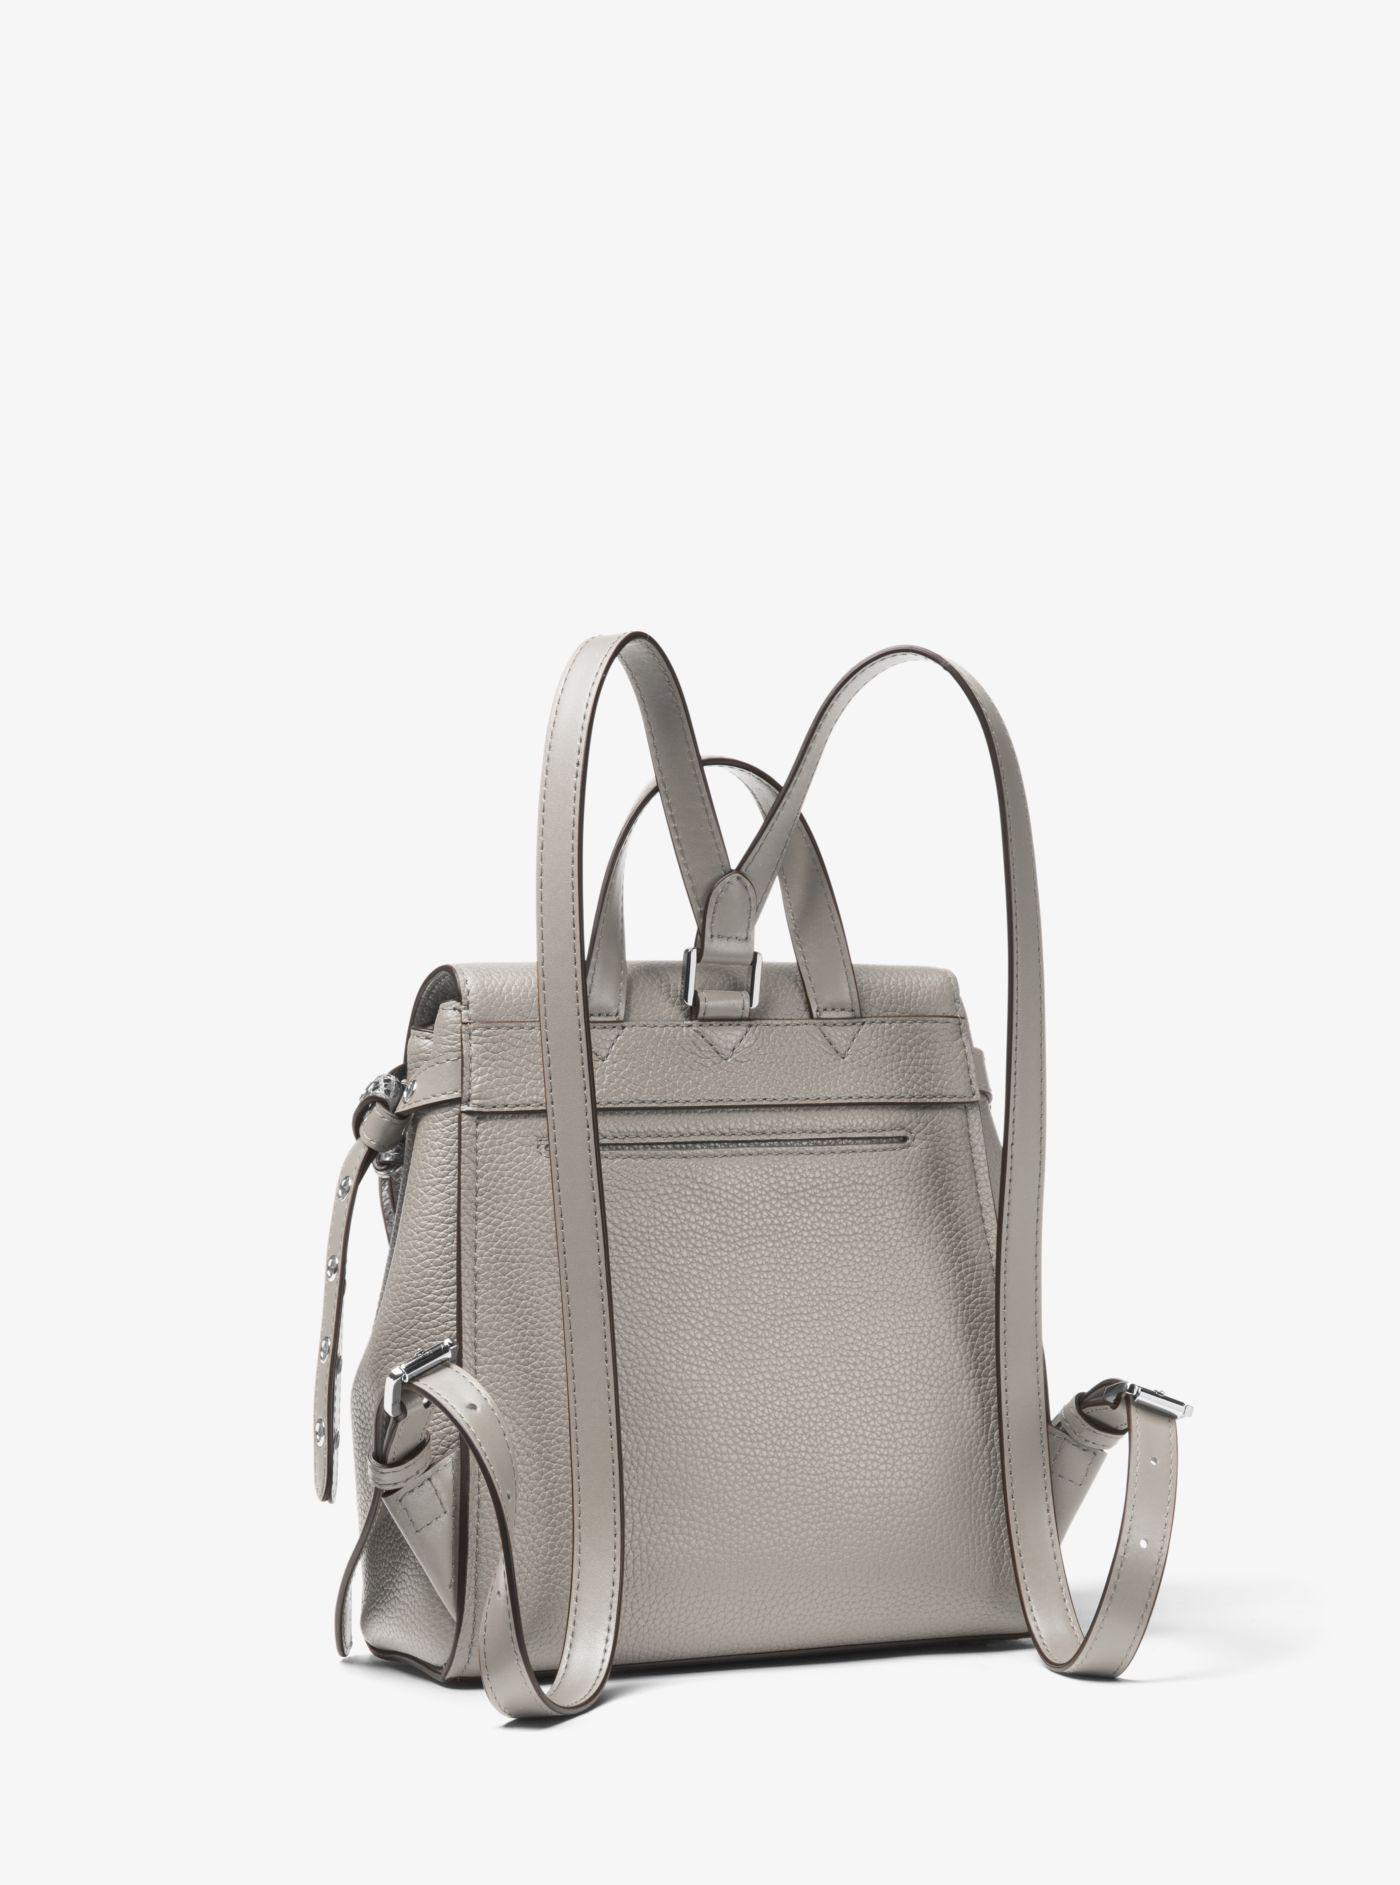 9f63c2b3b1d5 Lyst - Michael Kors Bristol Small Leather Backpack in Gray